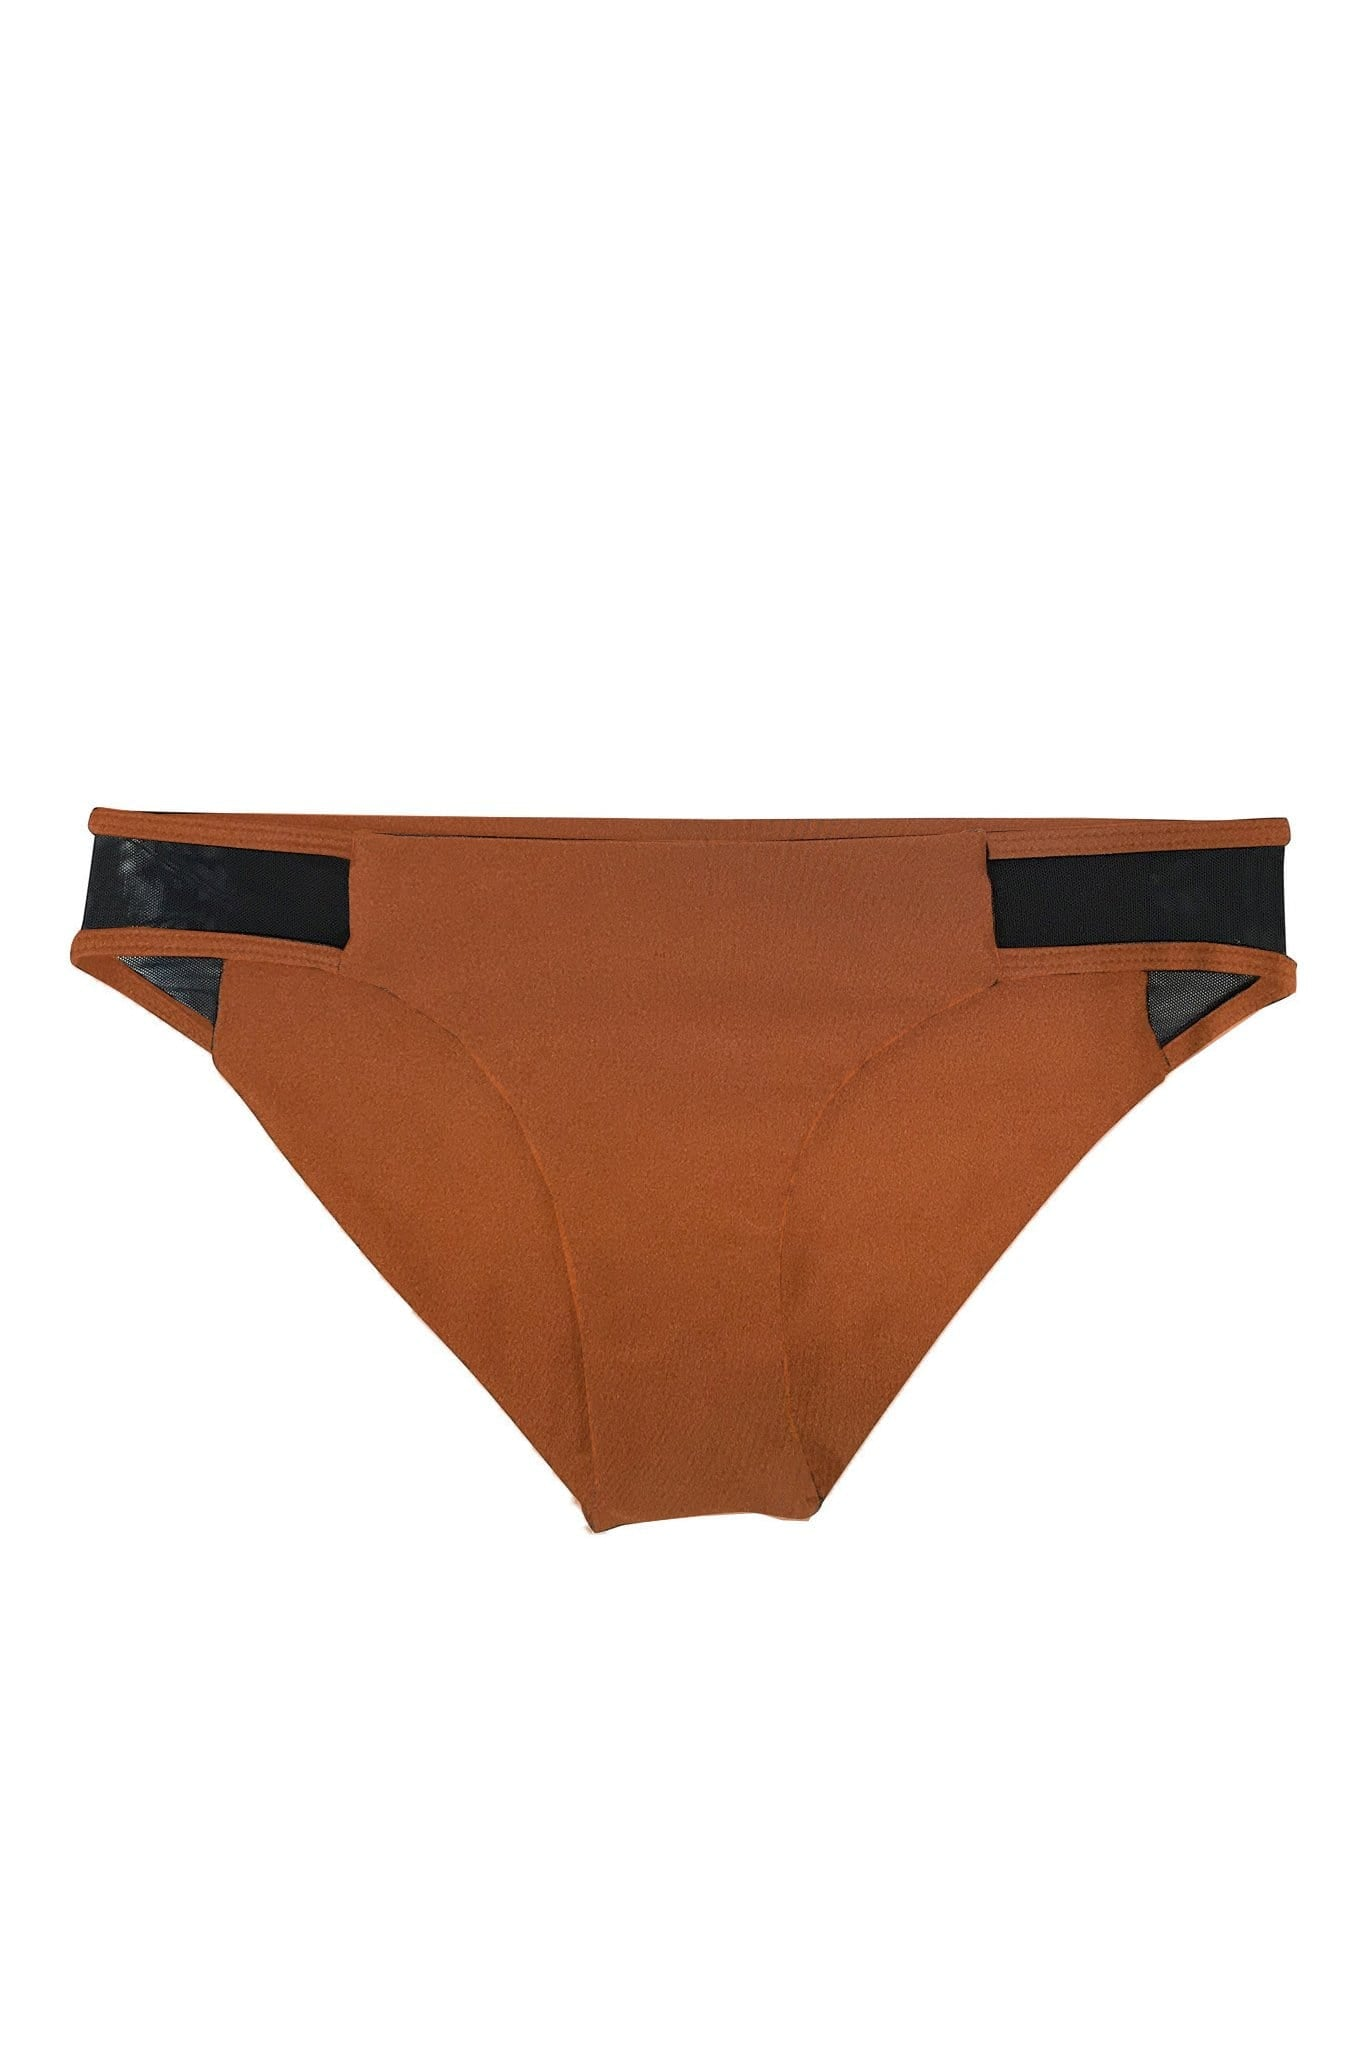 *SALE* Kaili Bottom COPPER